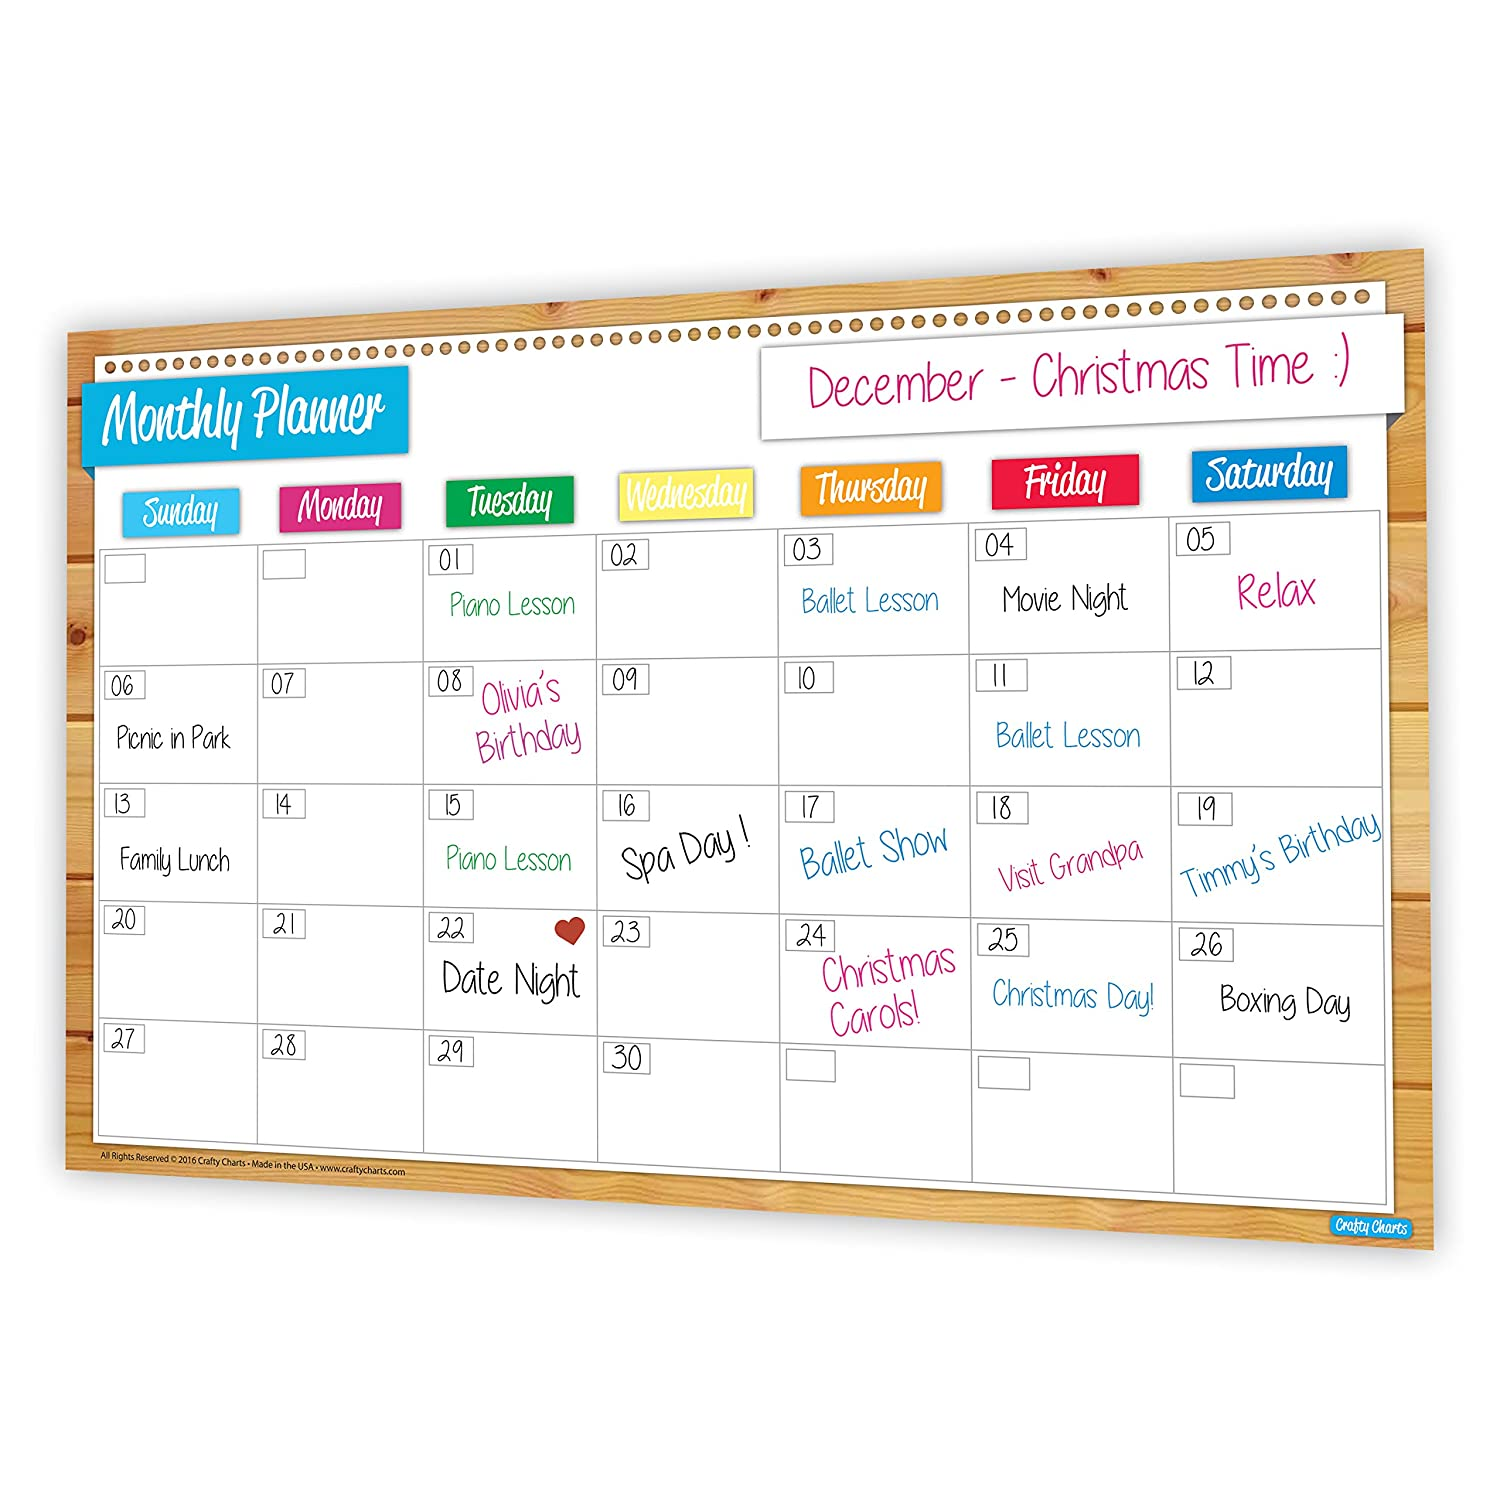 2018 Magnetic Monthly Planner, Flexible Dry Erase White Board, Daily and Weekly Organiser, Meal Planner, Grocery List, Keeps You Organised, Track Appointments for the Whole Family, Reusable Calendar